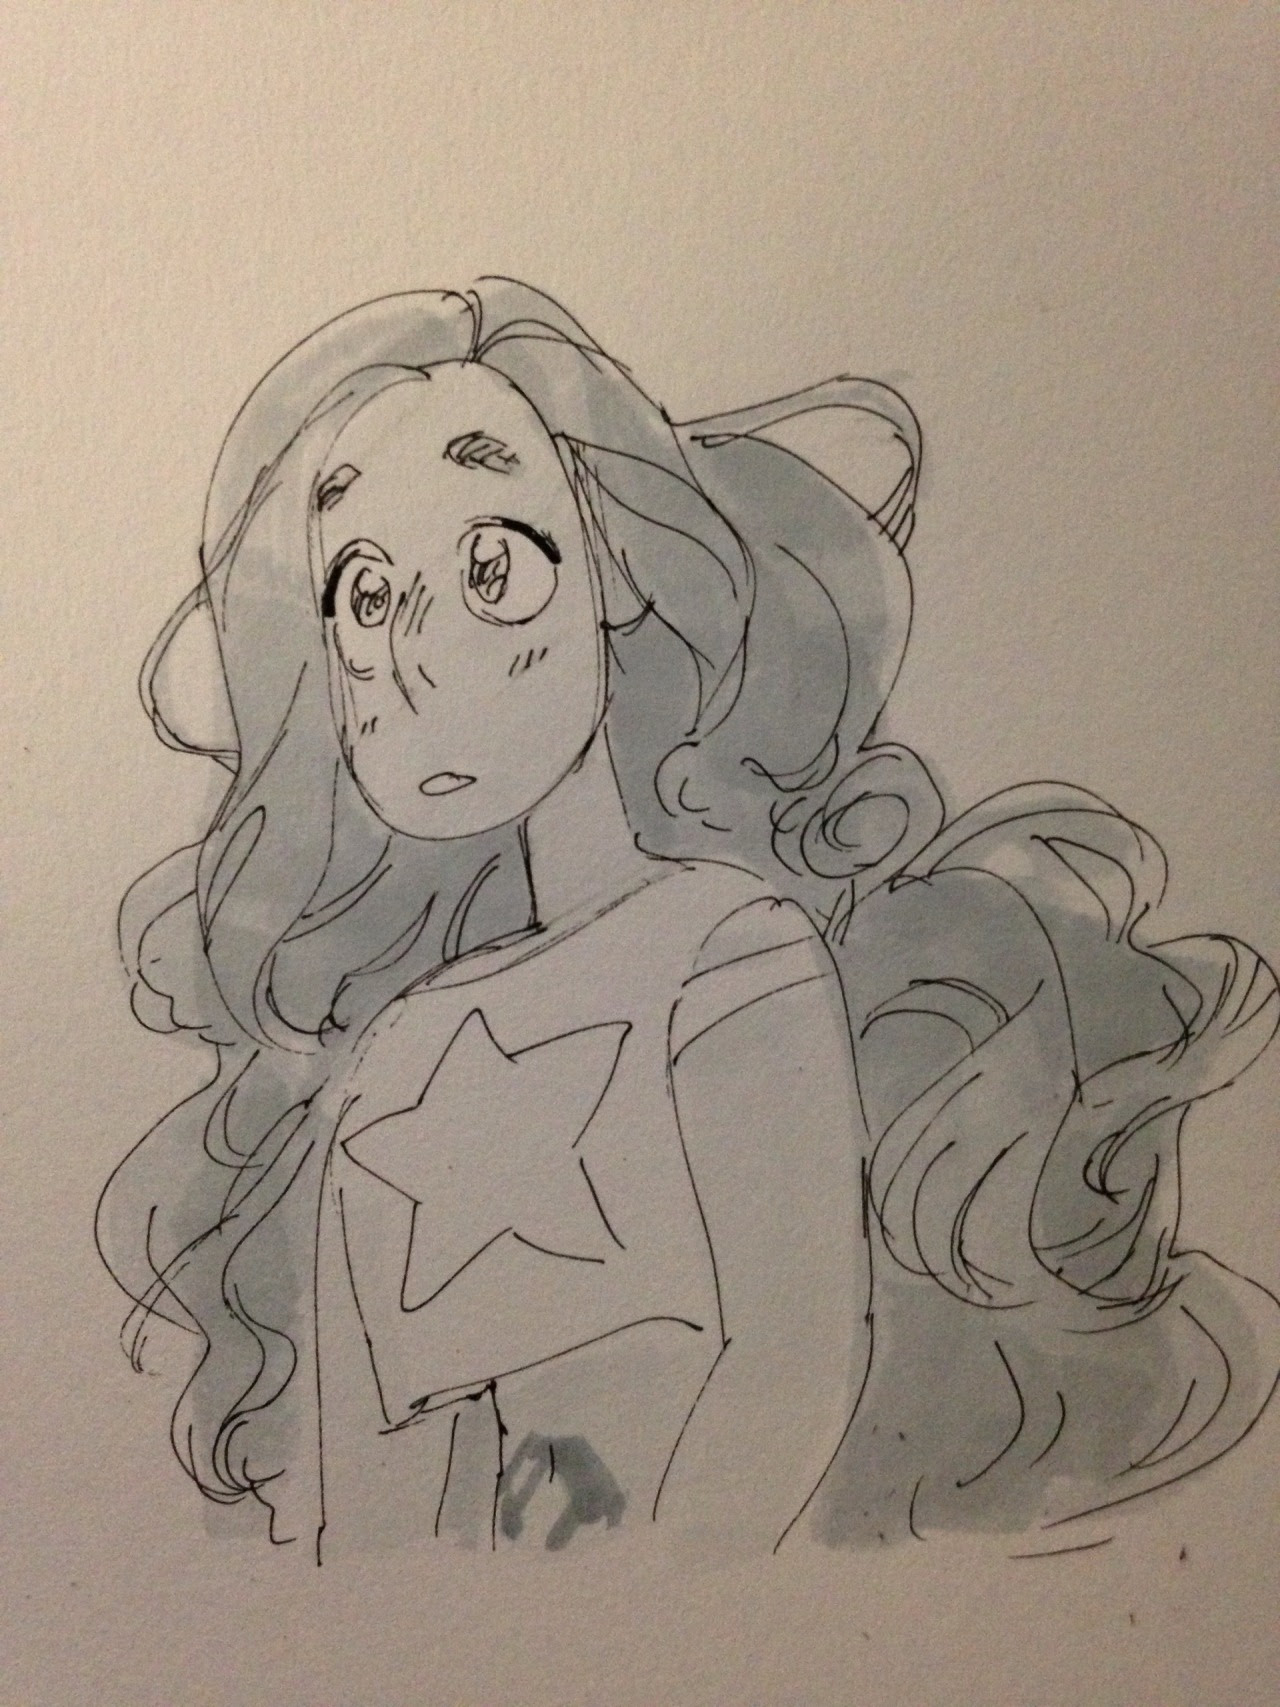 I don't draw stevonnie much so here